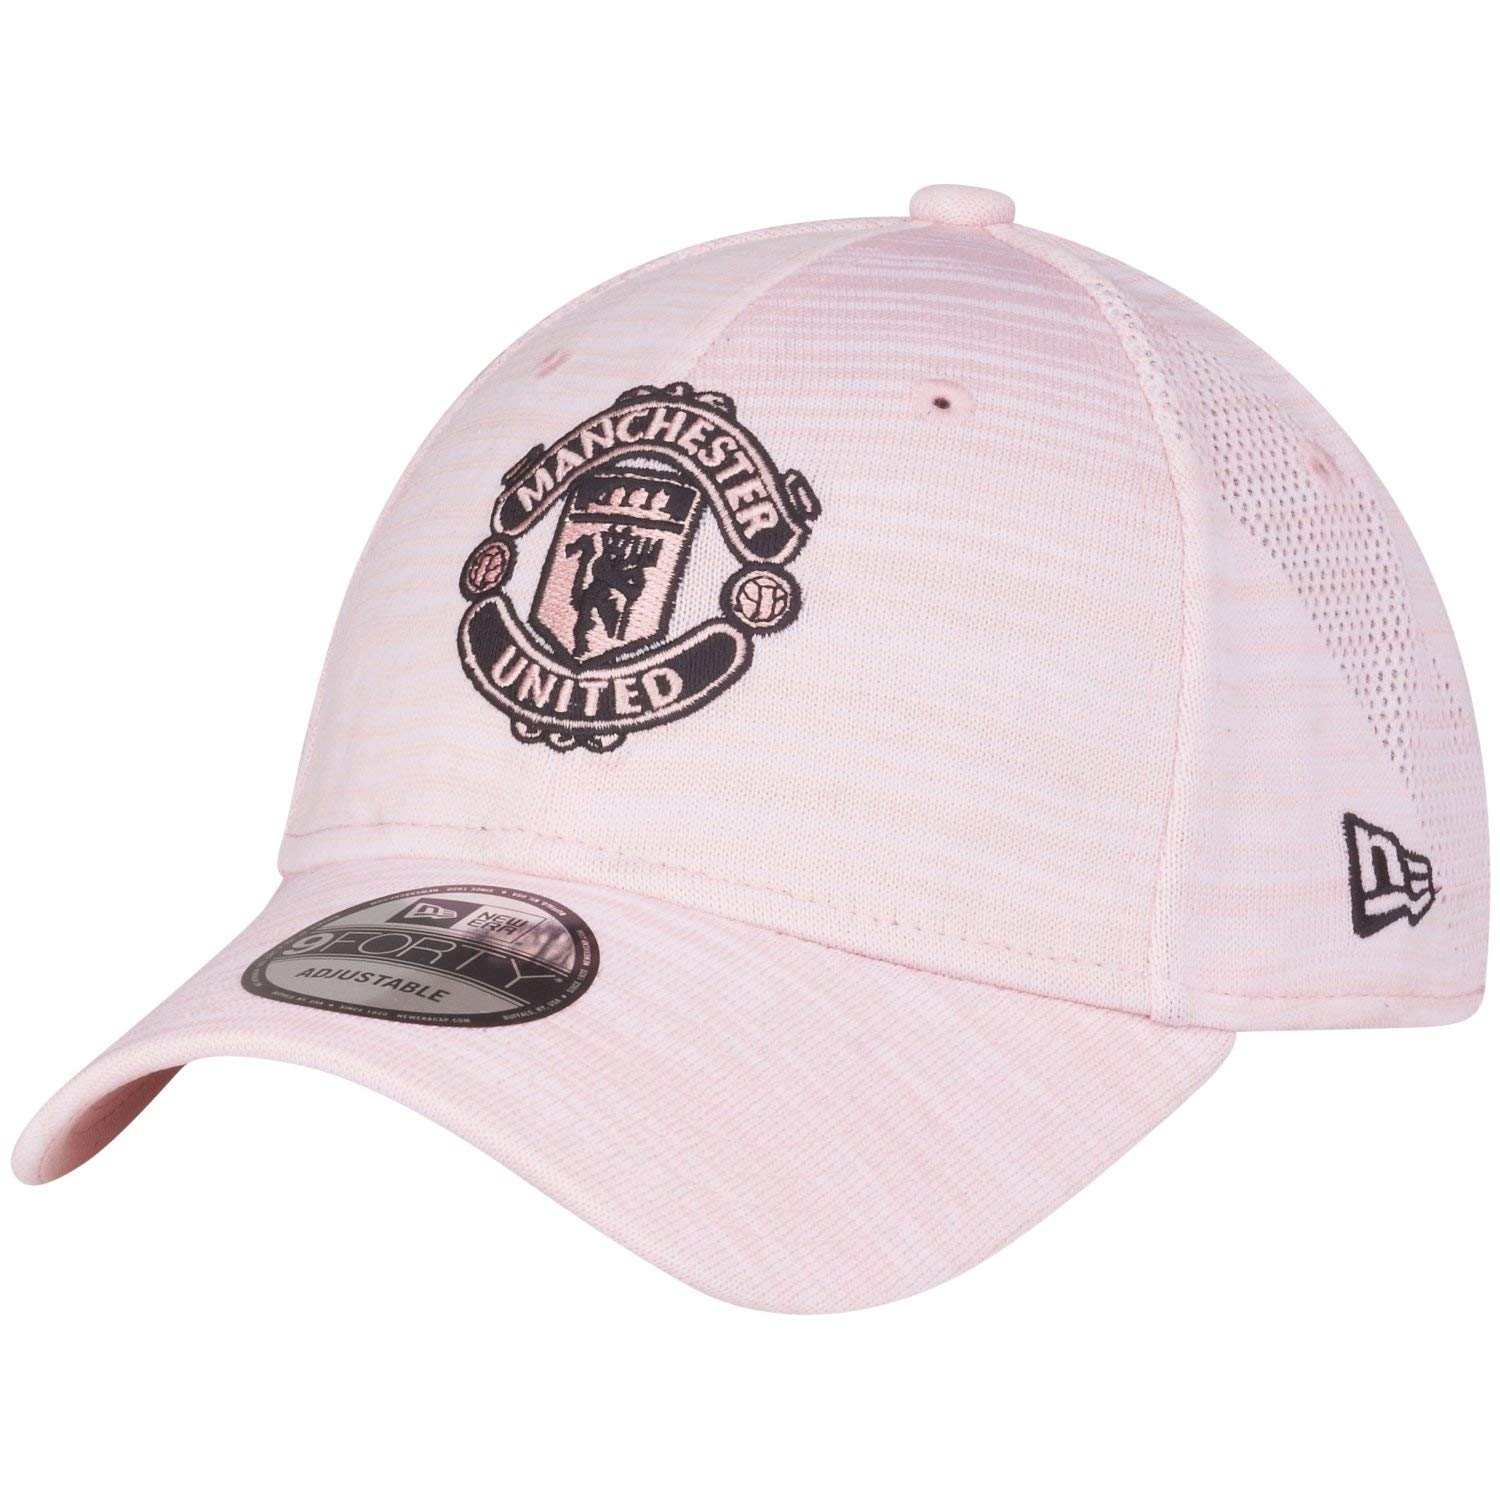 beste website nieuwe aankomst nieuwste collectie New Era Manchester United Pink Engineered 9FORTY Adjustable Hat/Cap